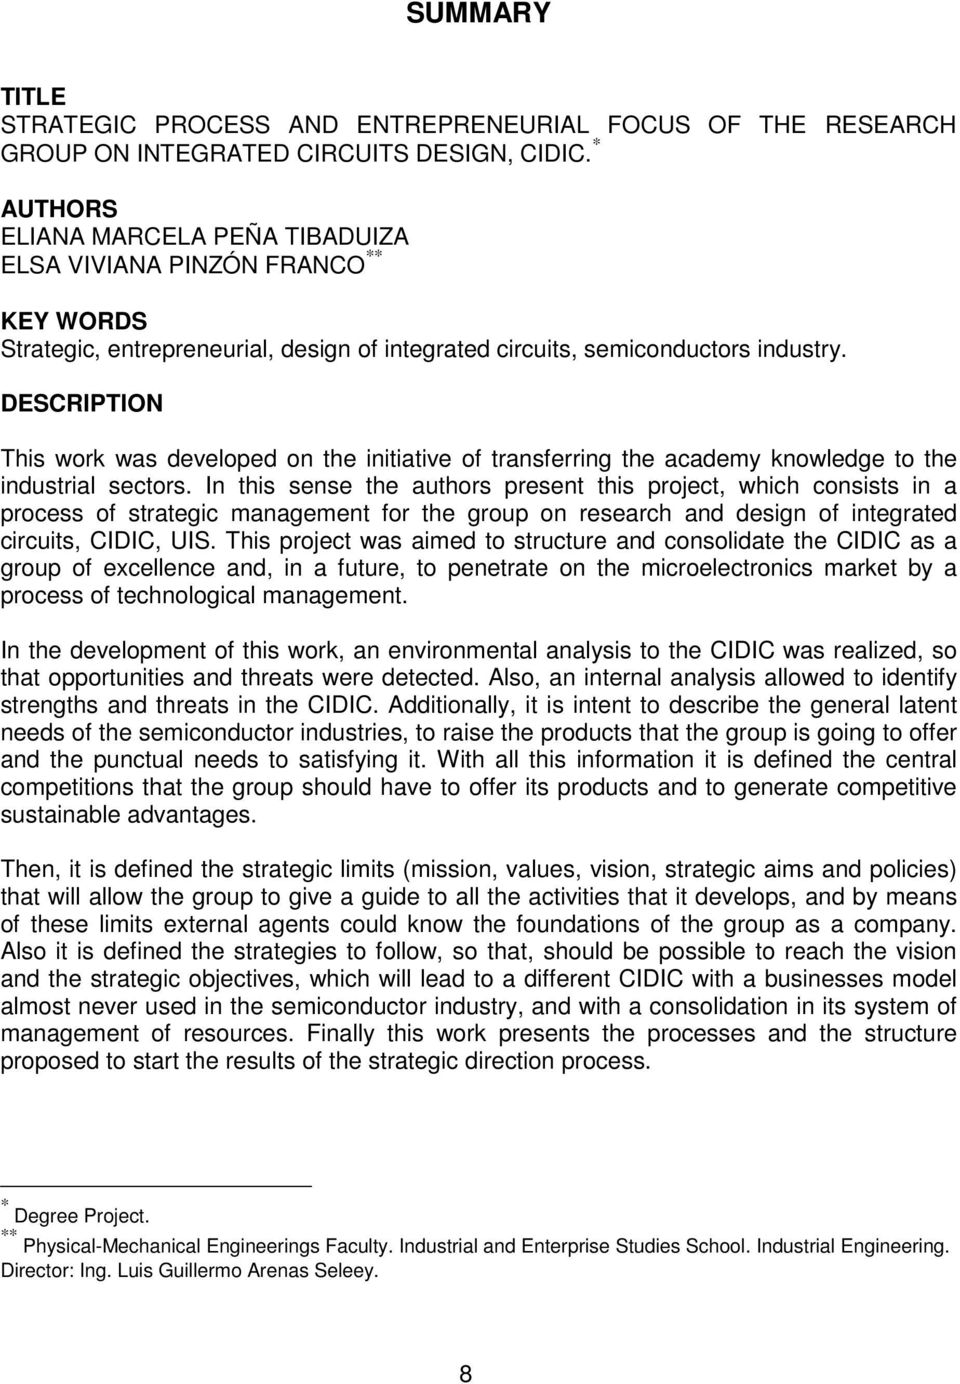 DESCRIPTION This work was developed on the initiative of transferring the academy knowledge to the industrial sectors.